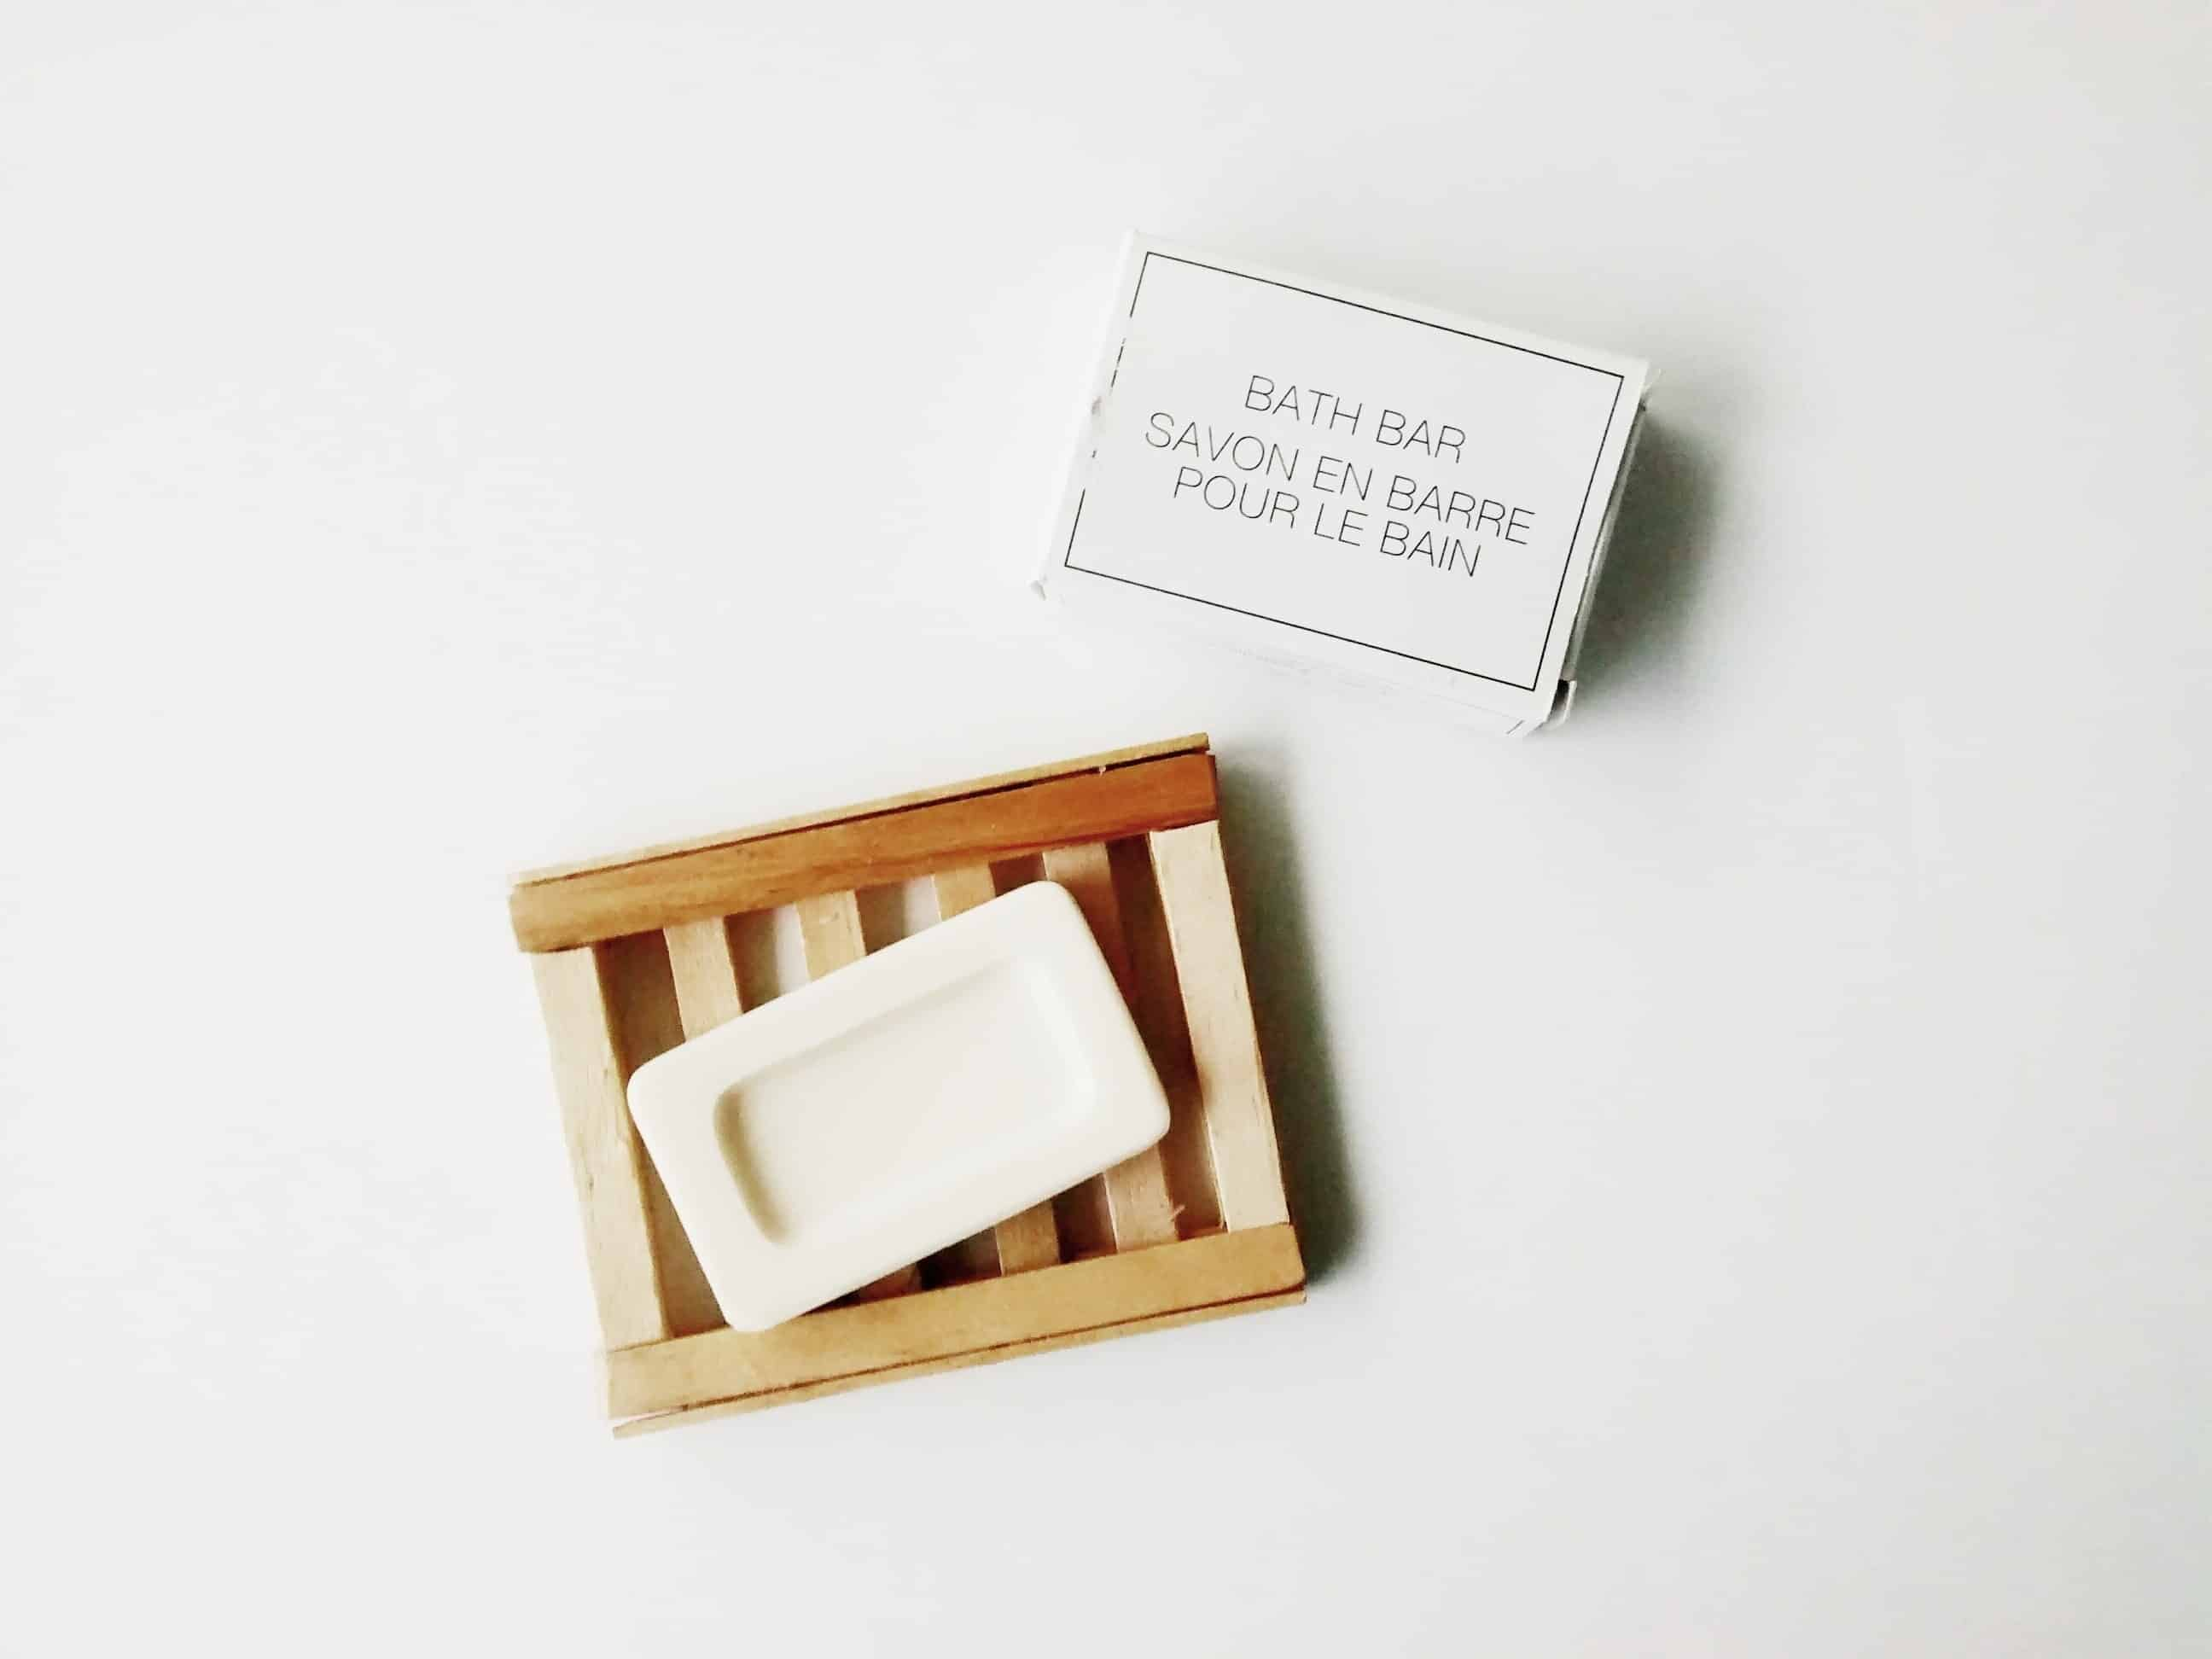 Popsicle stick soap dish